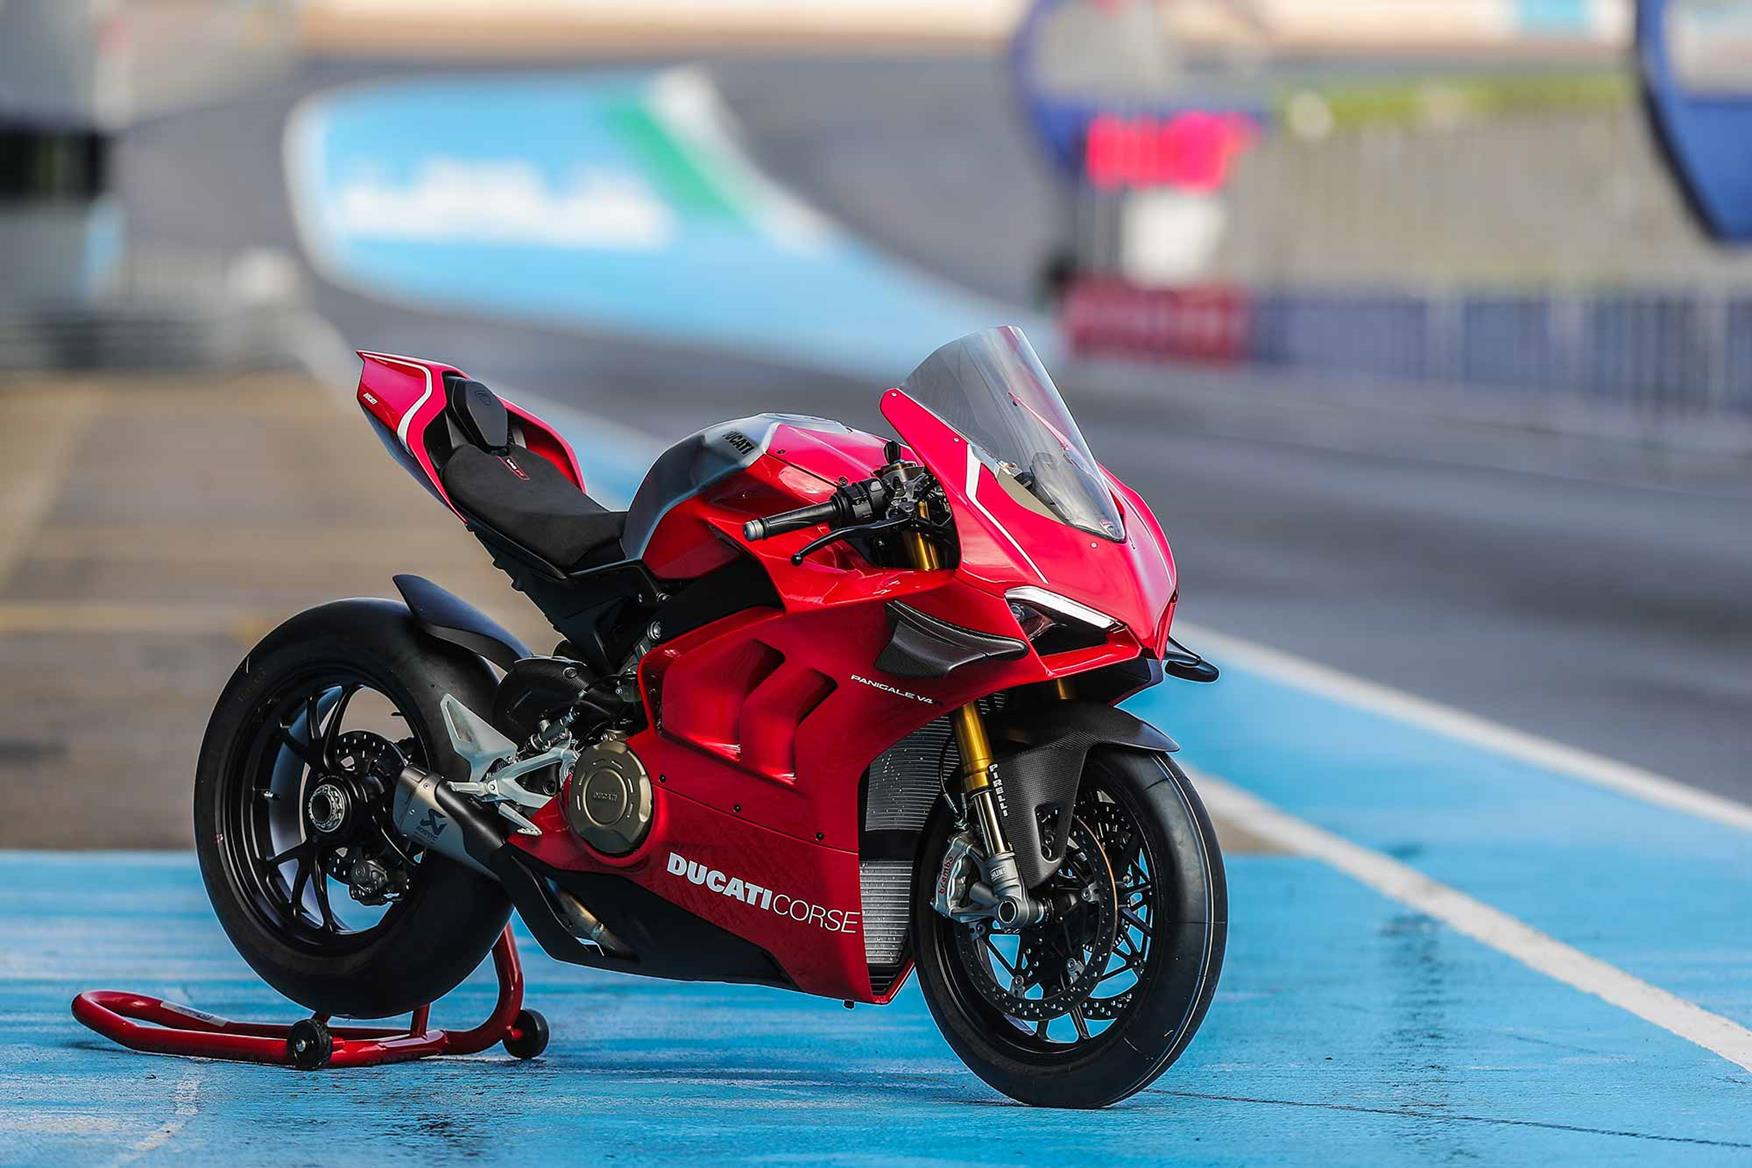 ducati panigale v4r 2019 on review. Black Bedroom Furniture Sets. Home Design Ideas